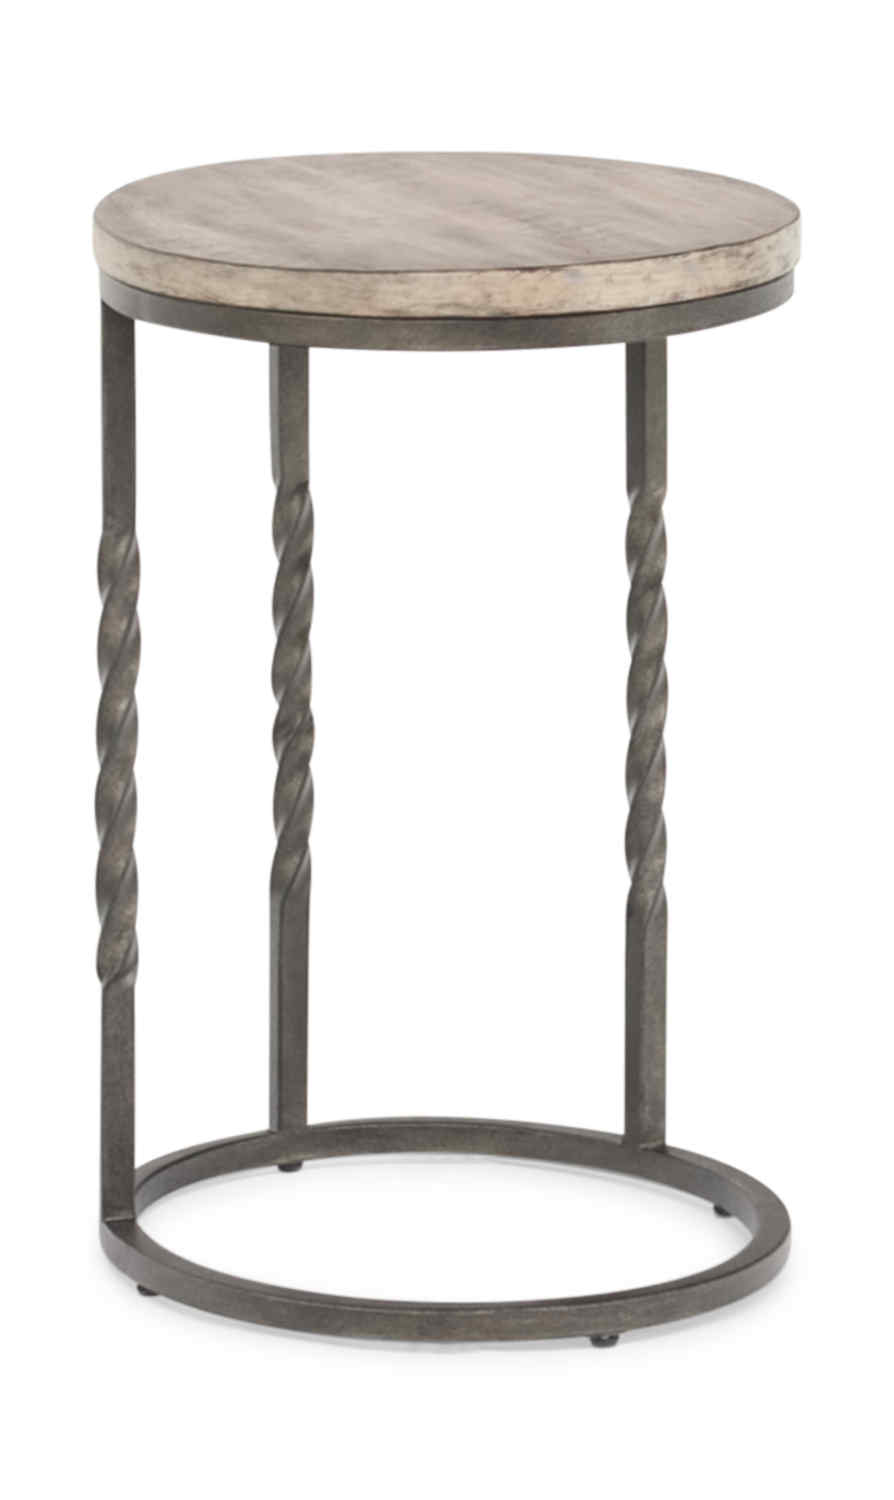 tauret accent table gabberts metal sheesham dining best desk lamp kitchen dinette sets base outdoor patio furniture toronto pier one cushions covers round wisteria mosaic tile